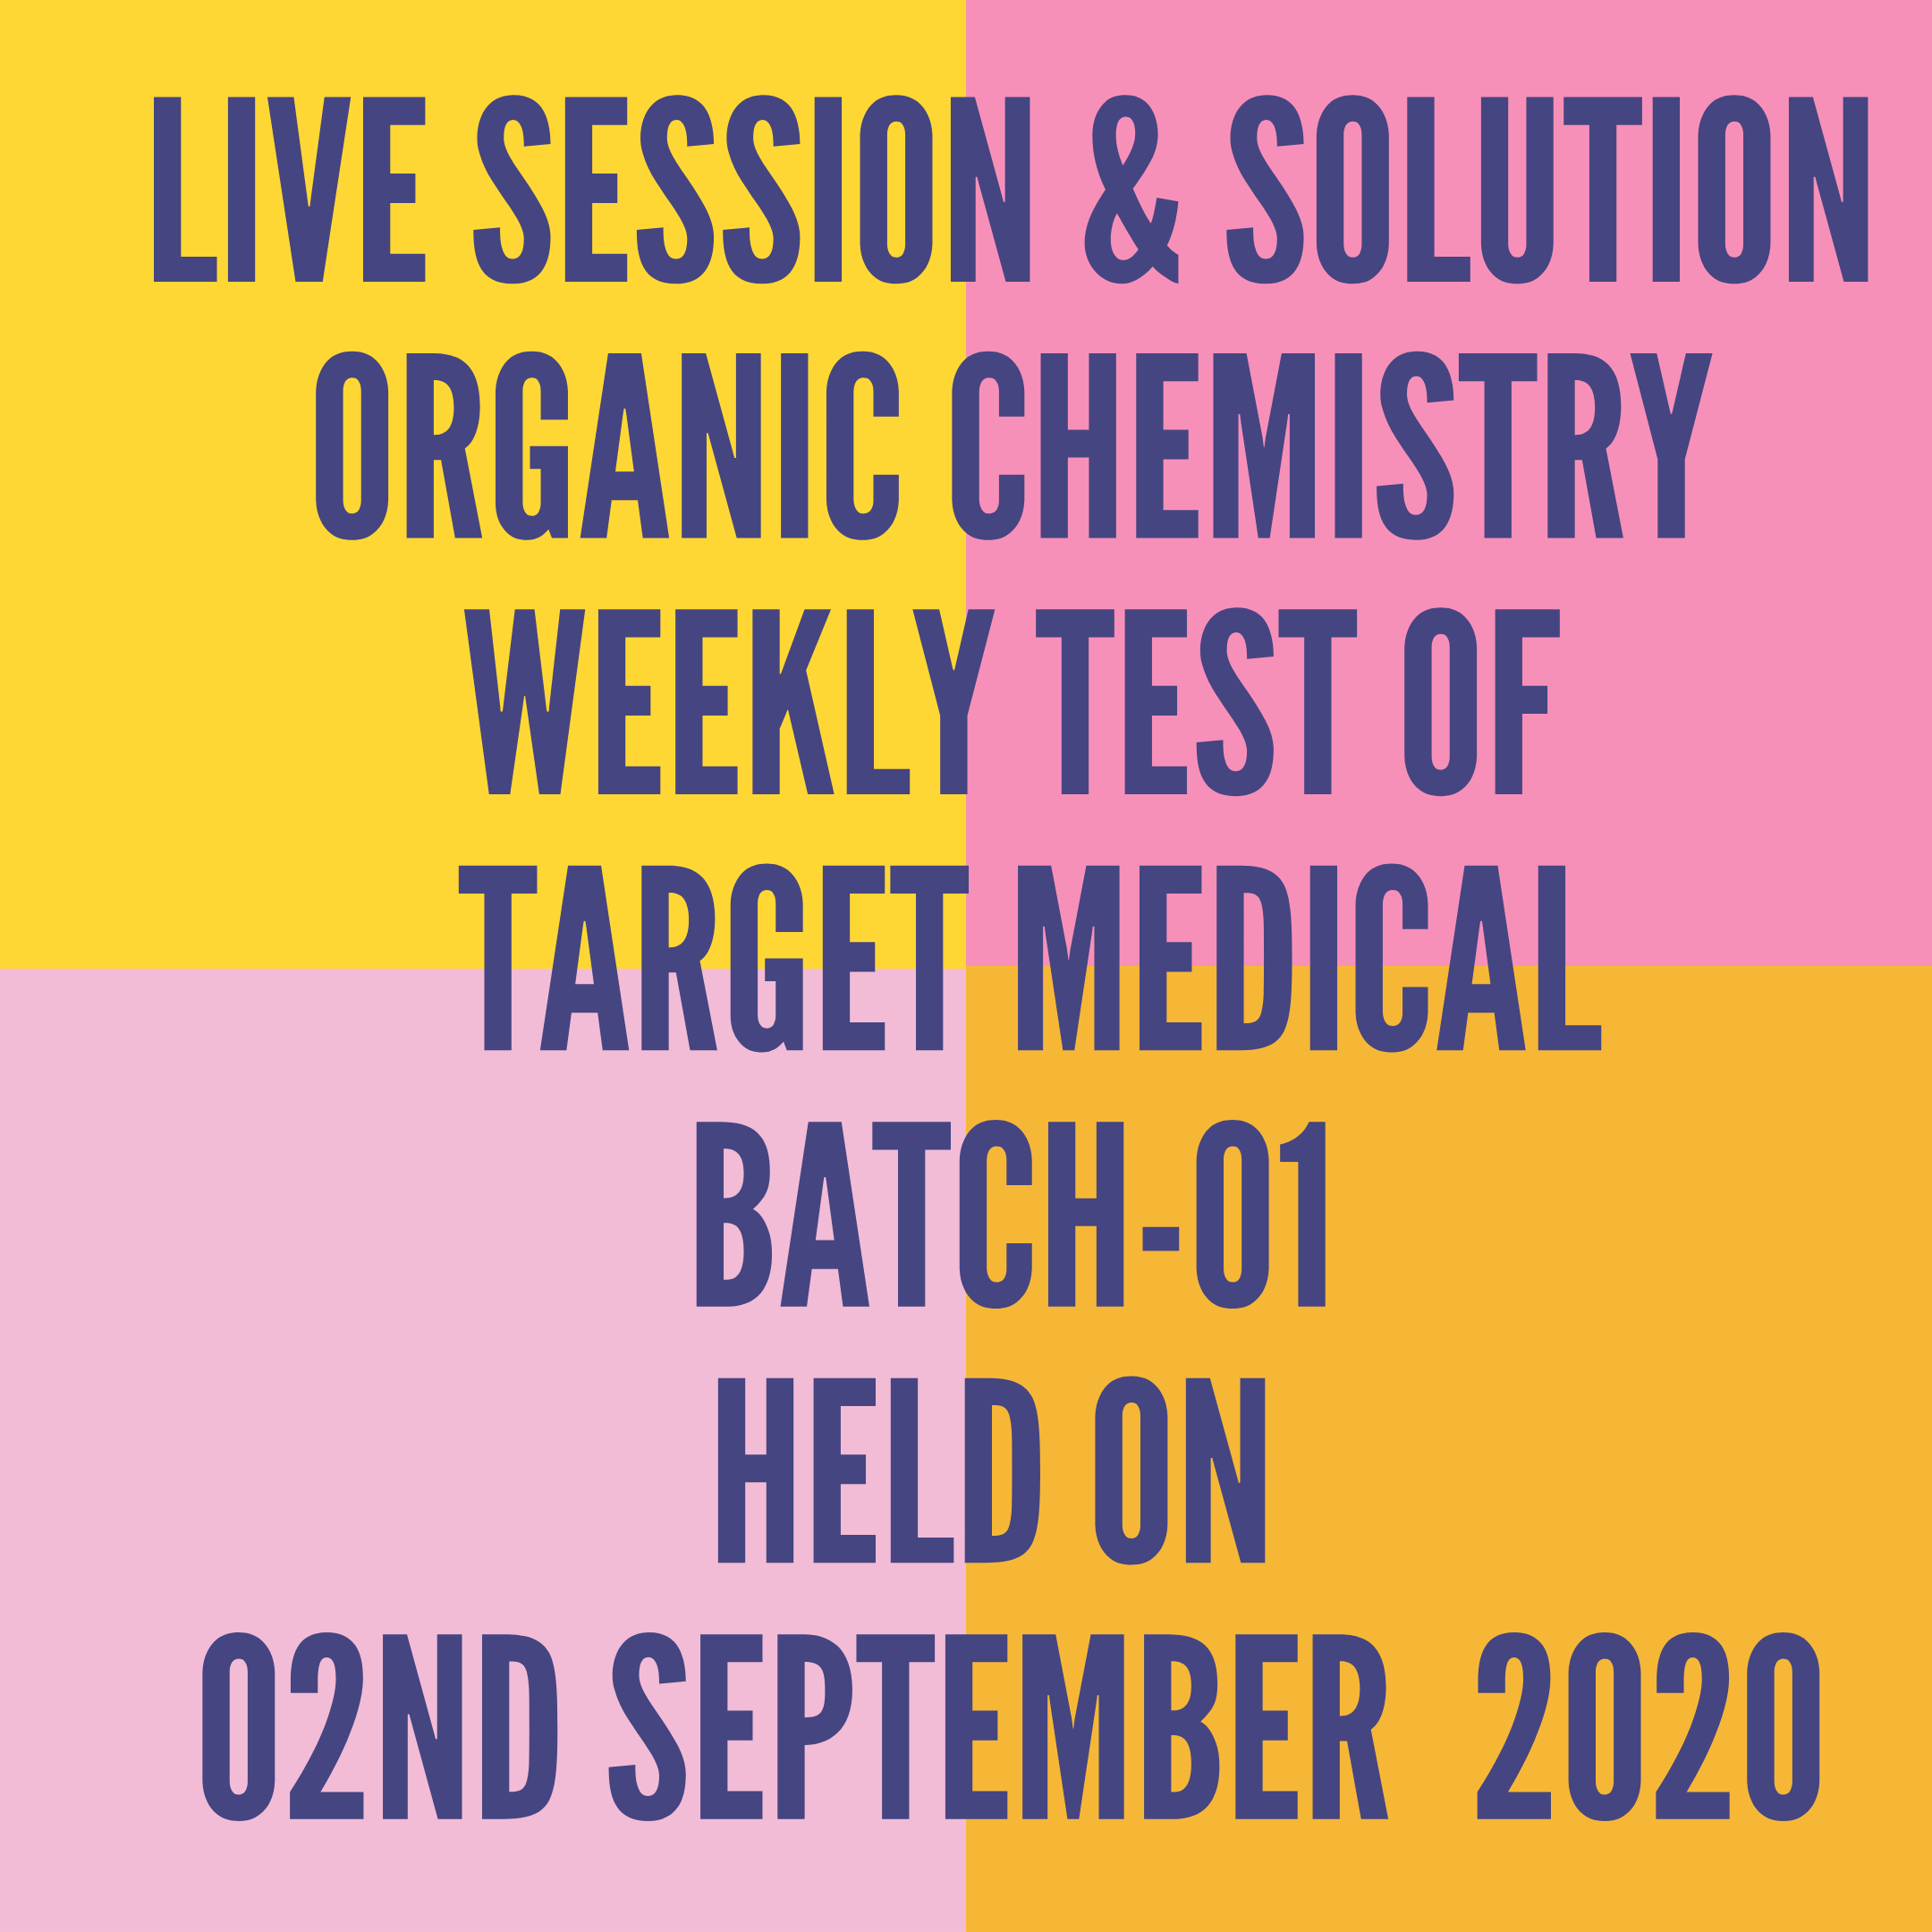 LIVE SESSION & SOLUTION ORGANIC CHEMISTRY WEEKLY TEST OF TARGET MEDICAL BATCH-01 HELD ON 02ND SEPTEMBER  2020